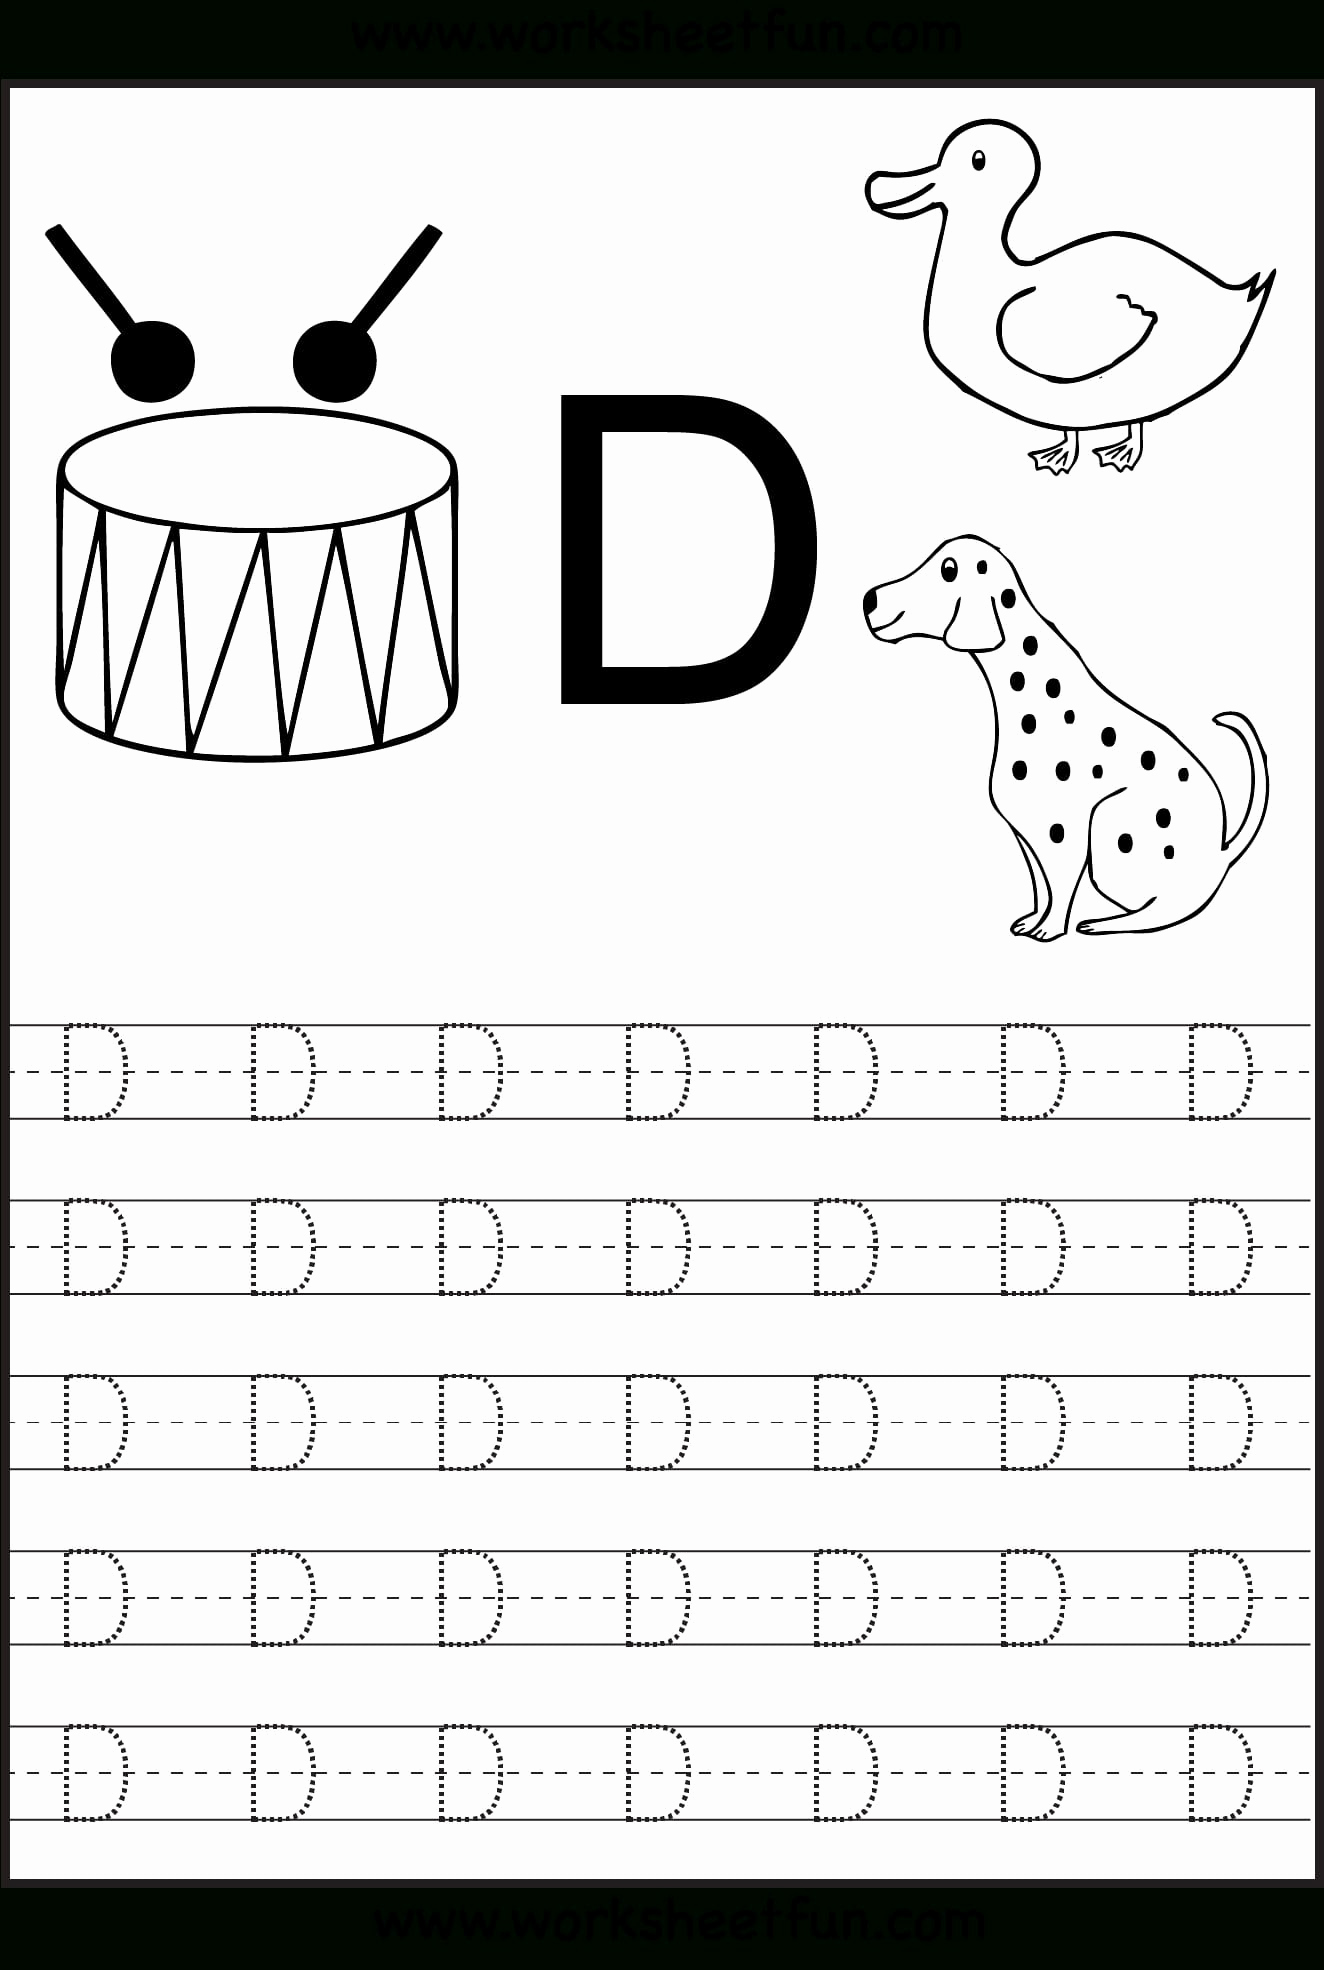 Pre Writing Worksheets Free New Alphabet Worksheets Preschool Tracing Printable Coloring